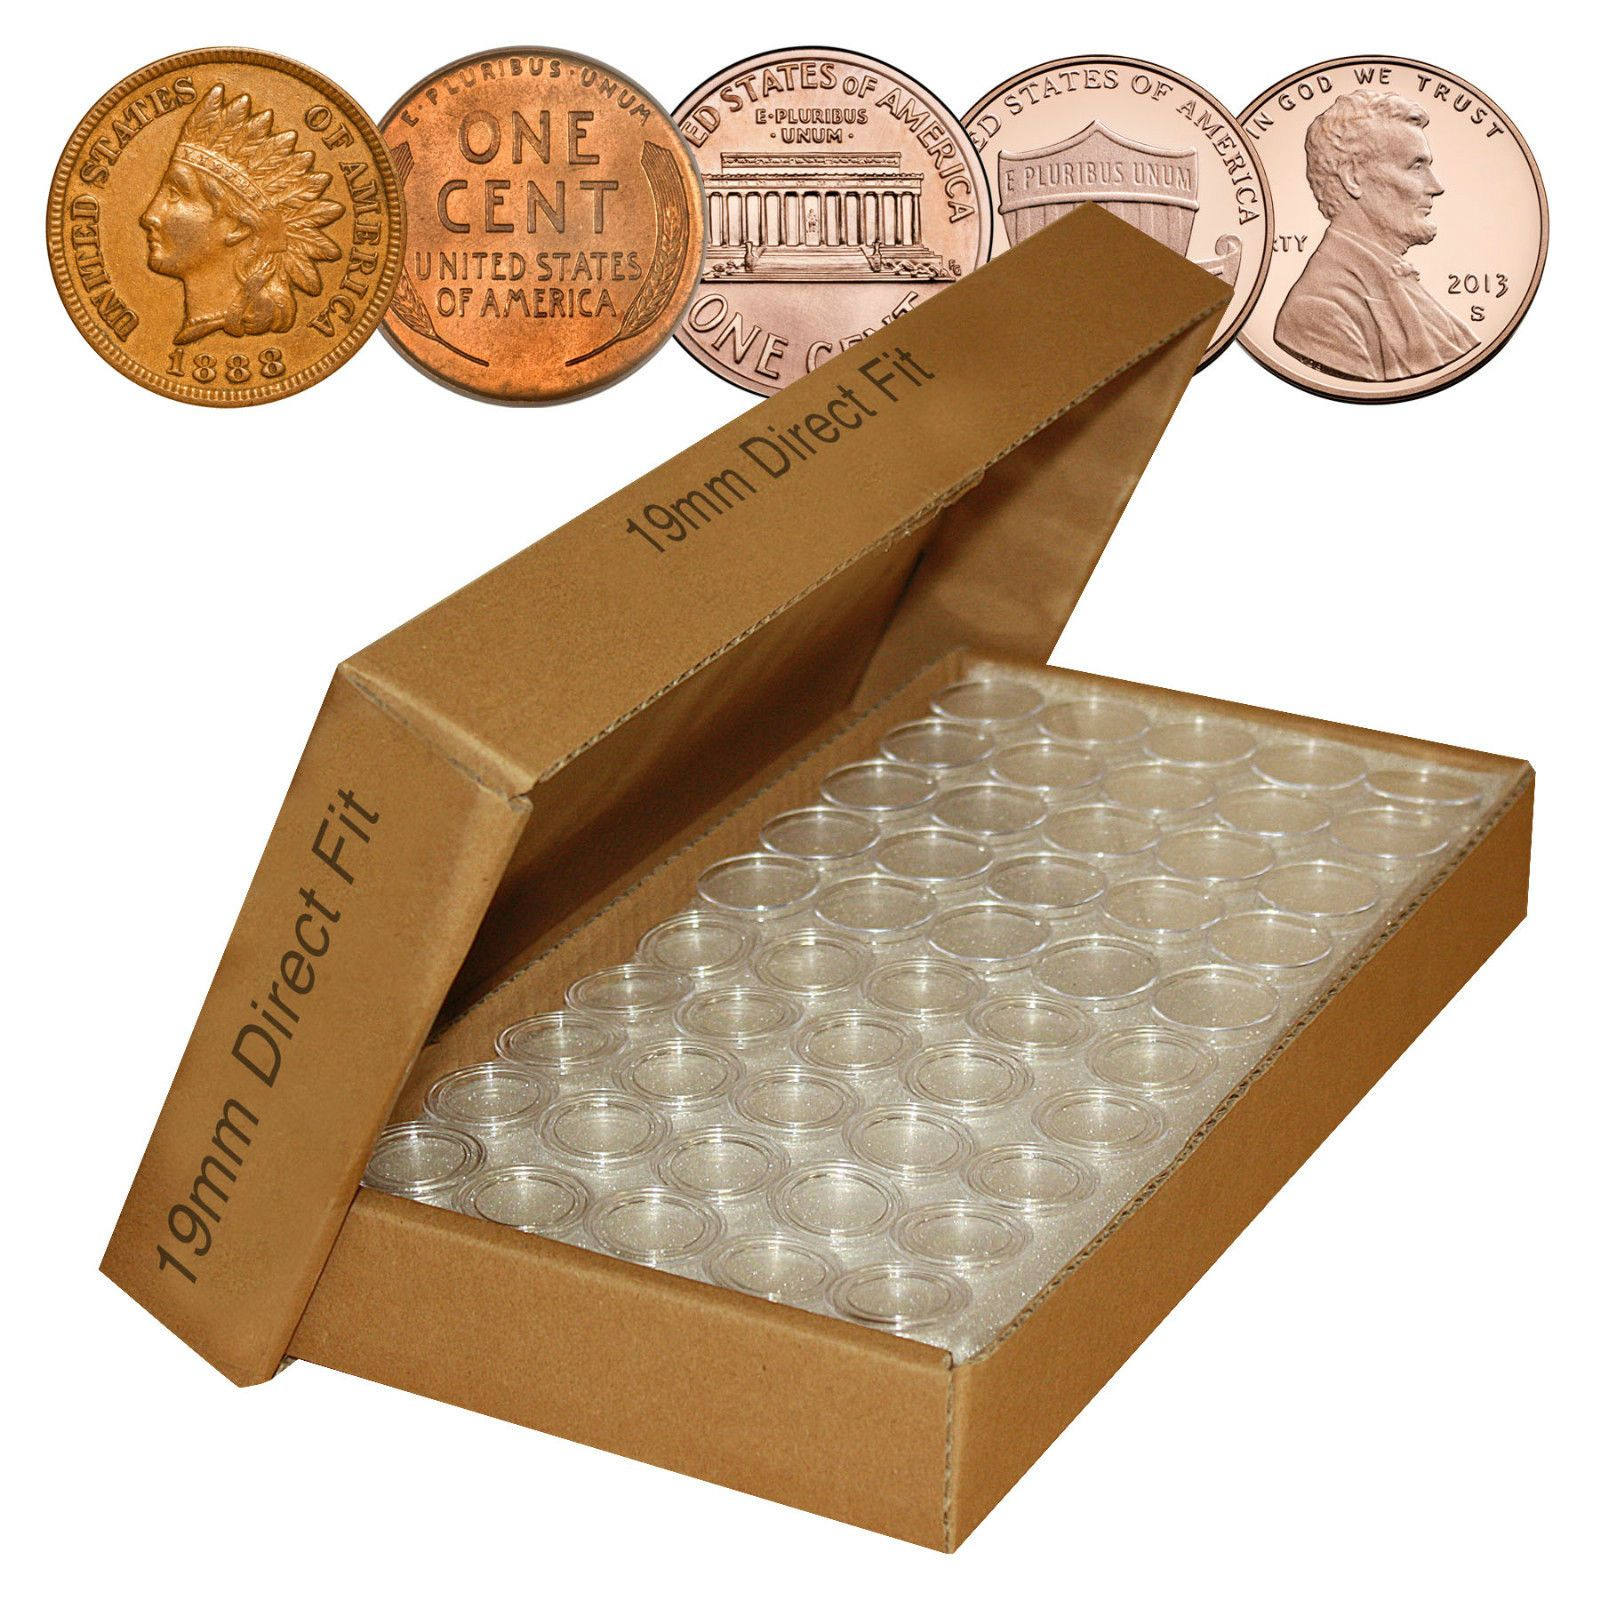 Direct-Fit Airtight A19 Coin Capsule Holders For PENNIES QTY: 1000 = 21ツ「 Each